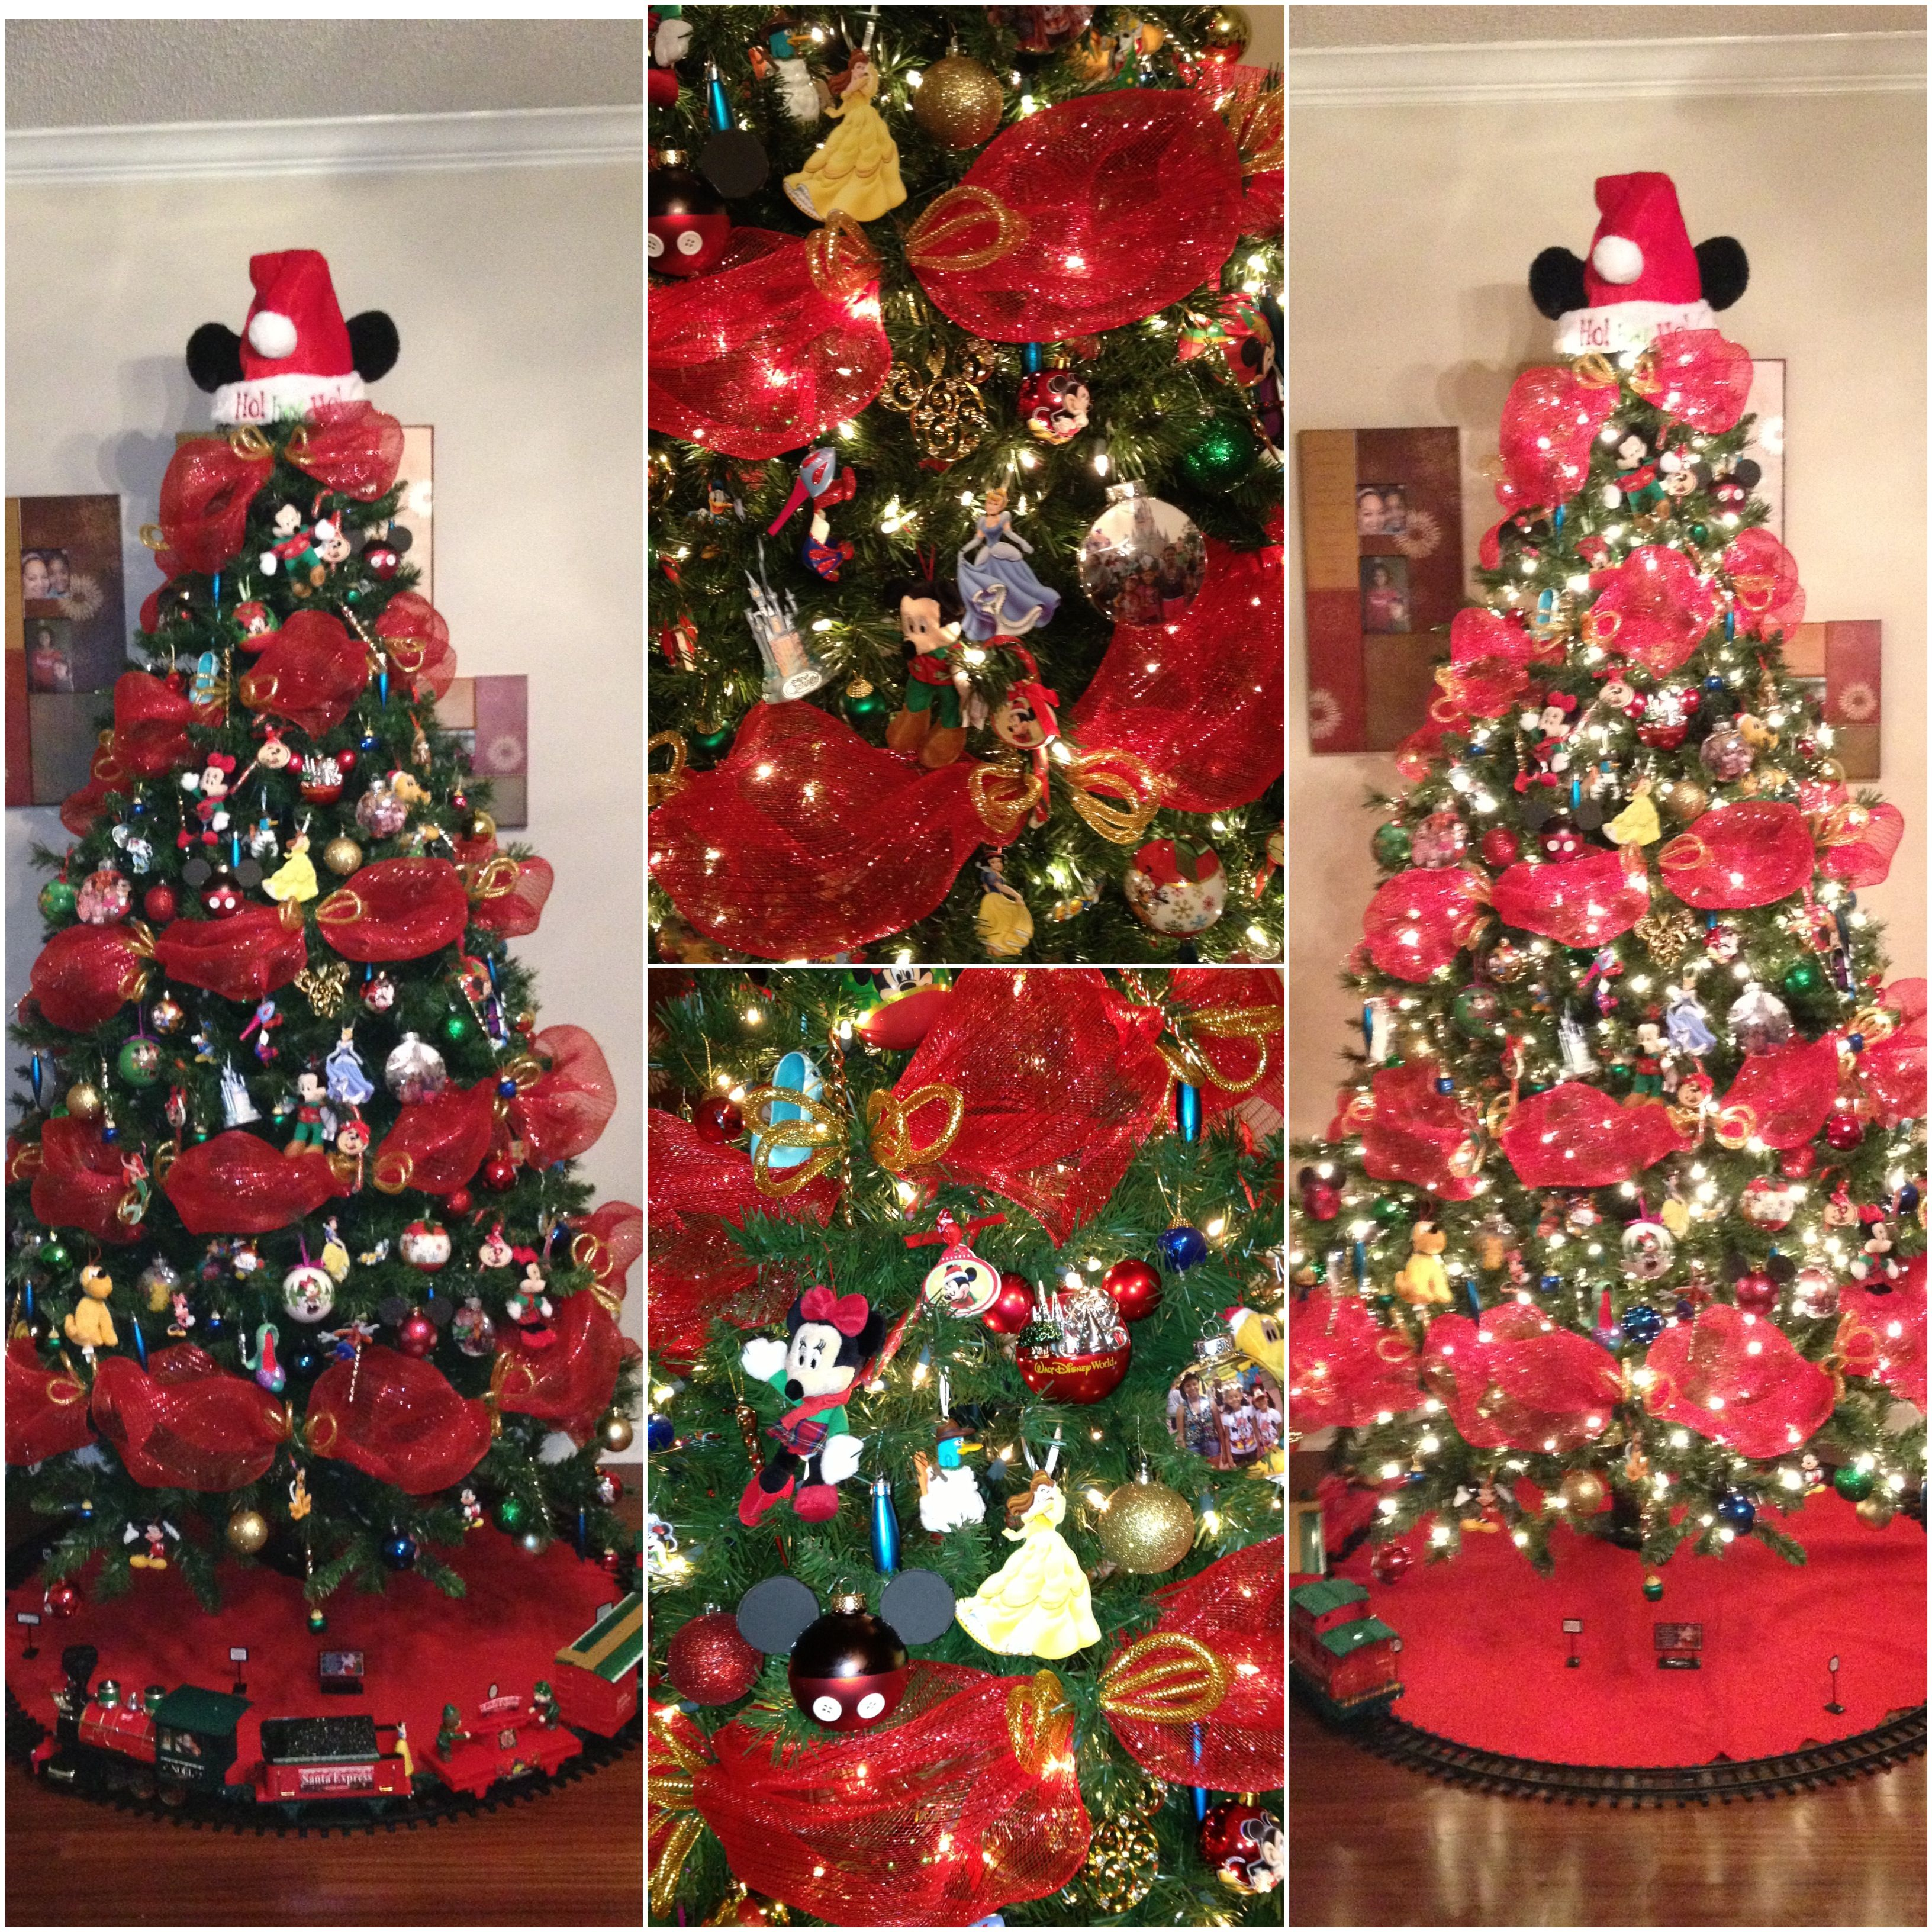 Disney christmas decorations for home - Mickey Mouse Christmas Home Decor Home Design Decor